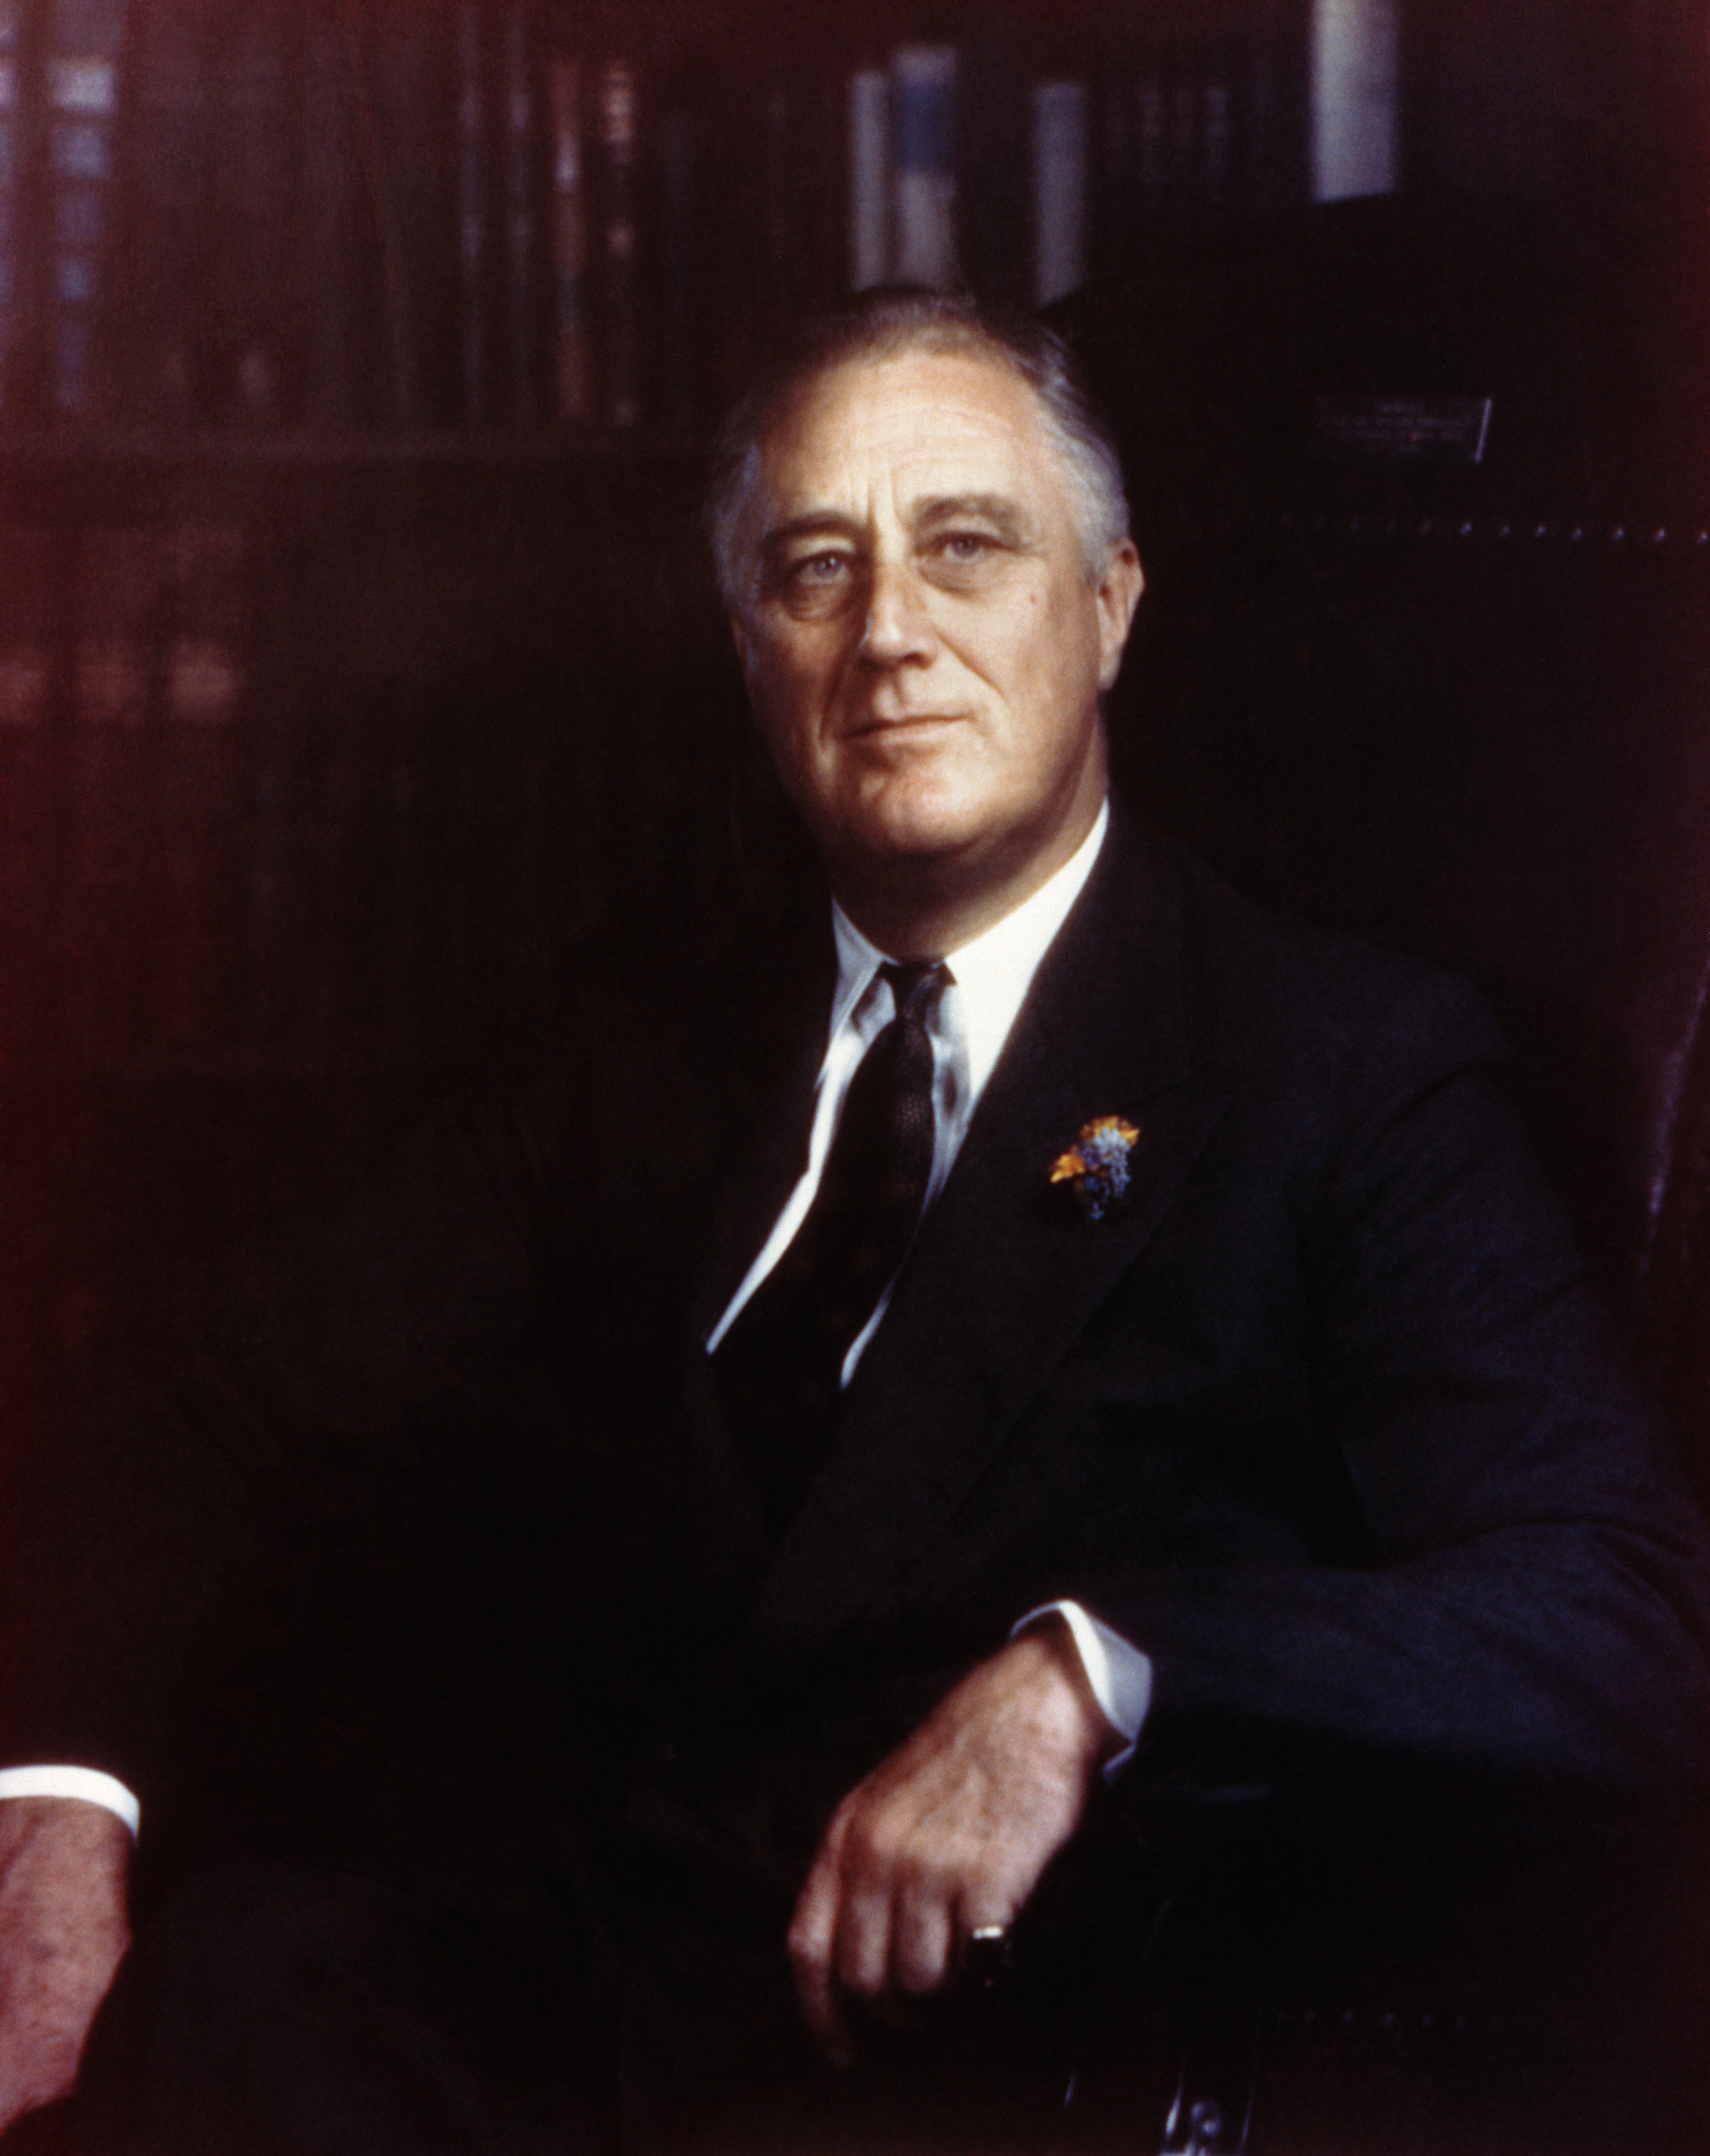 a biography of franklin delano roosevelt Franklin d roosevelt has 95 ratings and 19 reviews michael said: this is a solid and enjoyable one-volume biography of franklin delano roosevelt.